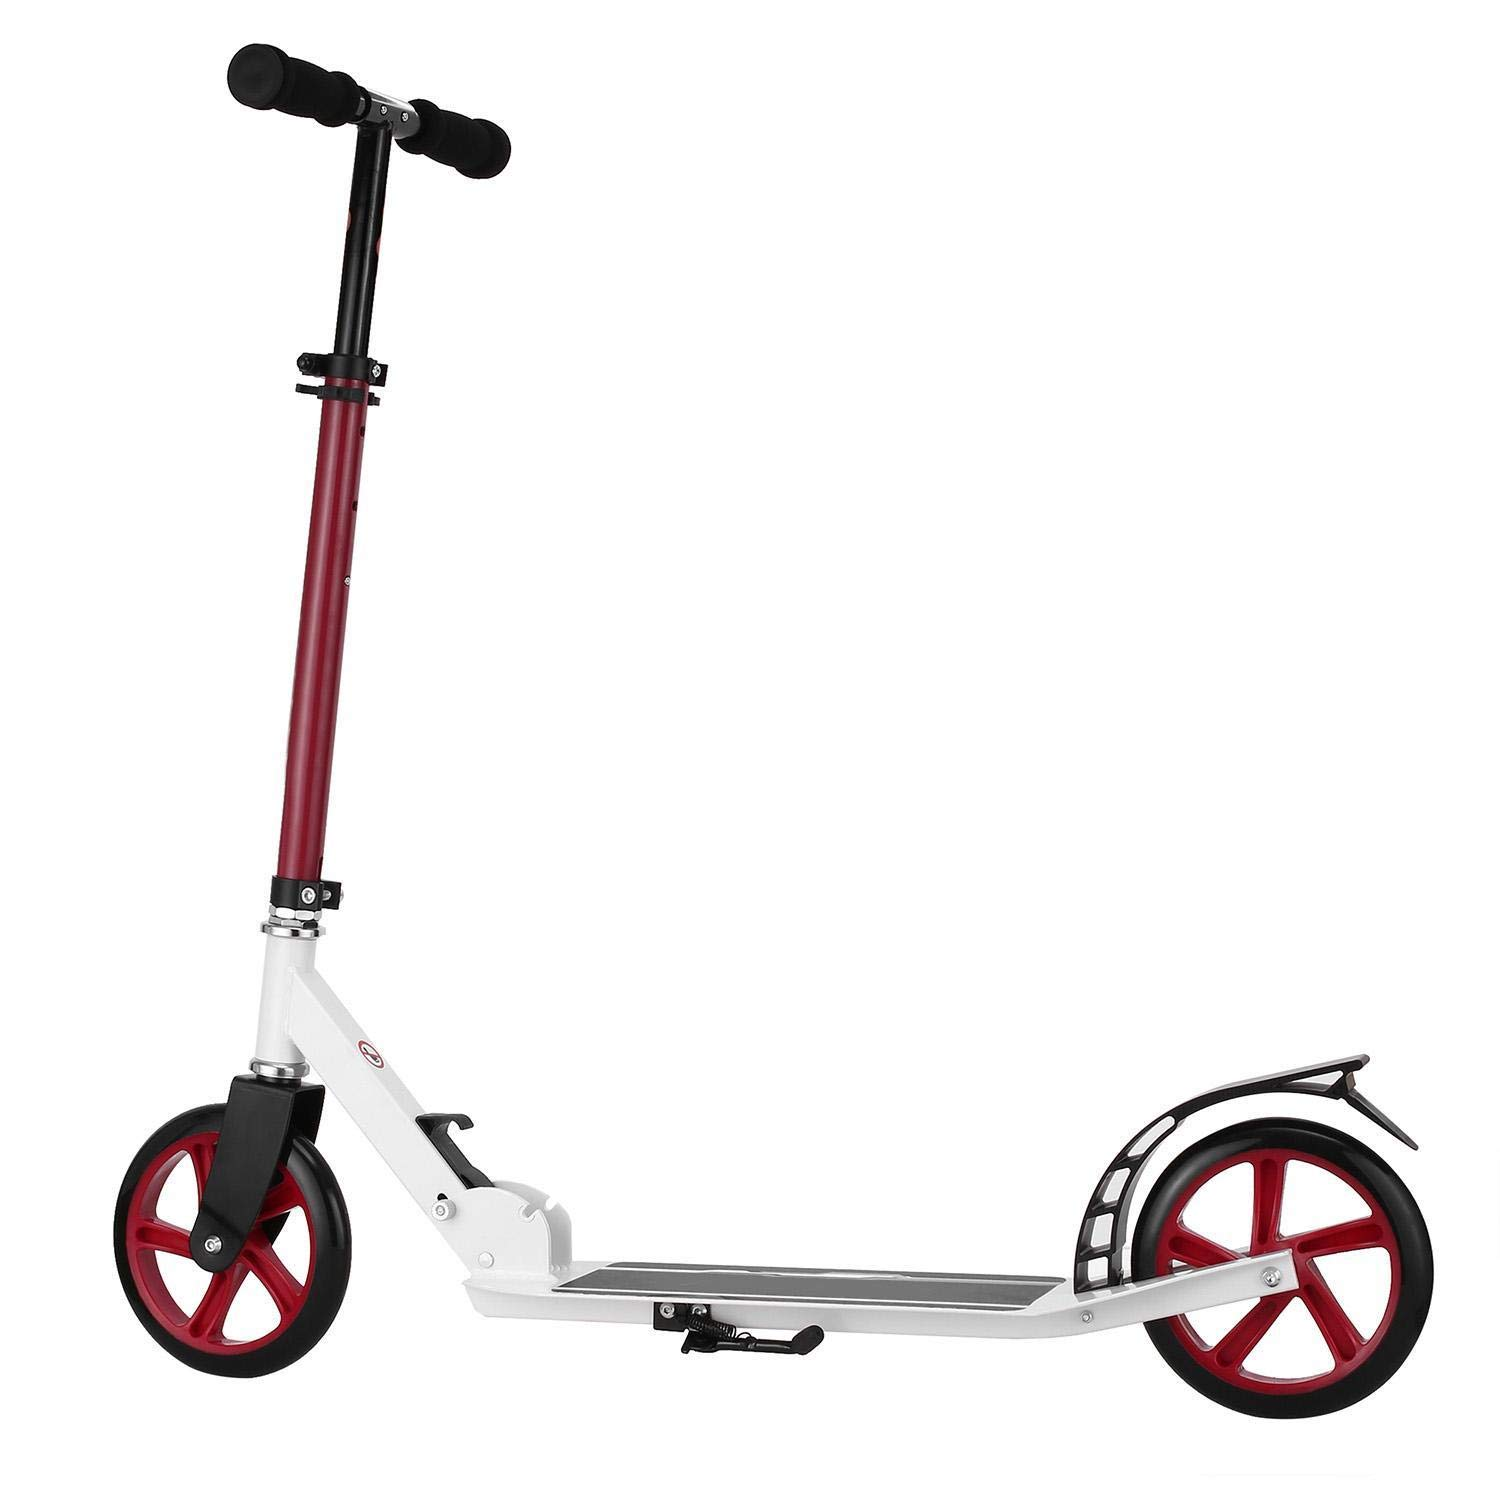 Cosway Folding Kick Scooter, New Aluminum Alloy 2 Wheel Adjustable Height Scooter for Adult Teen Deluxe Glider, with Kickstand, 220lbs Capacity